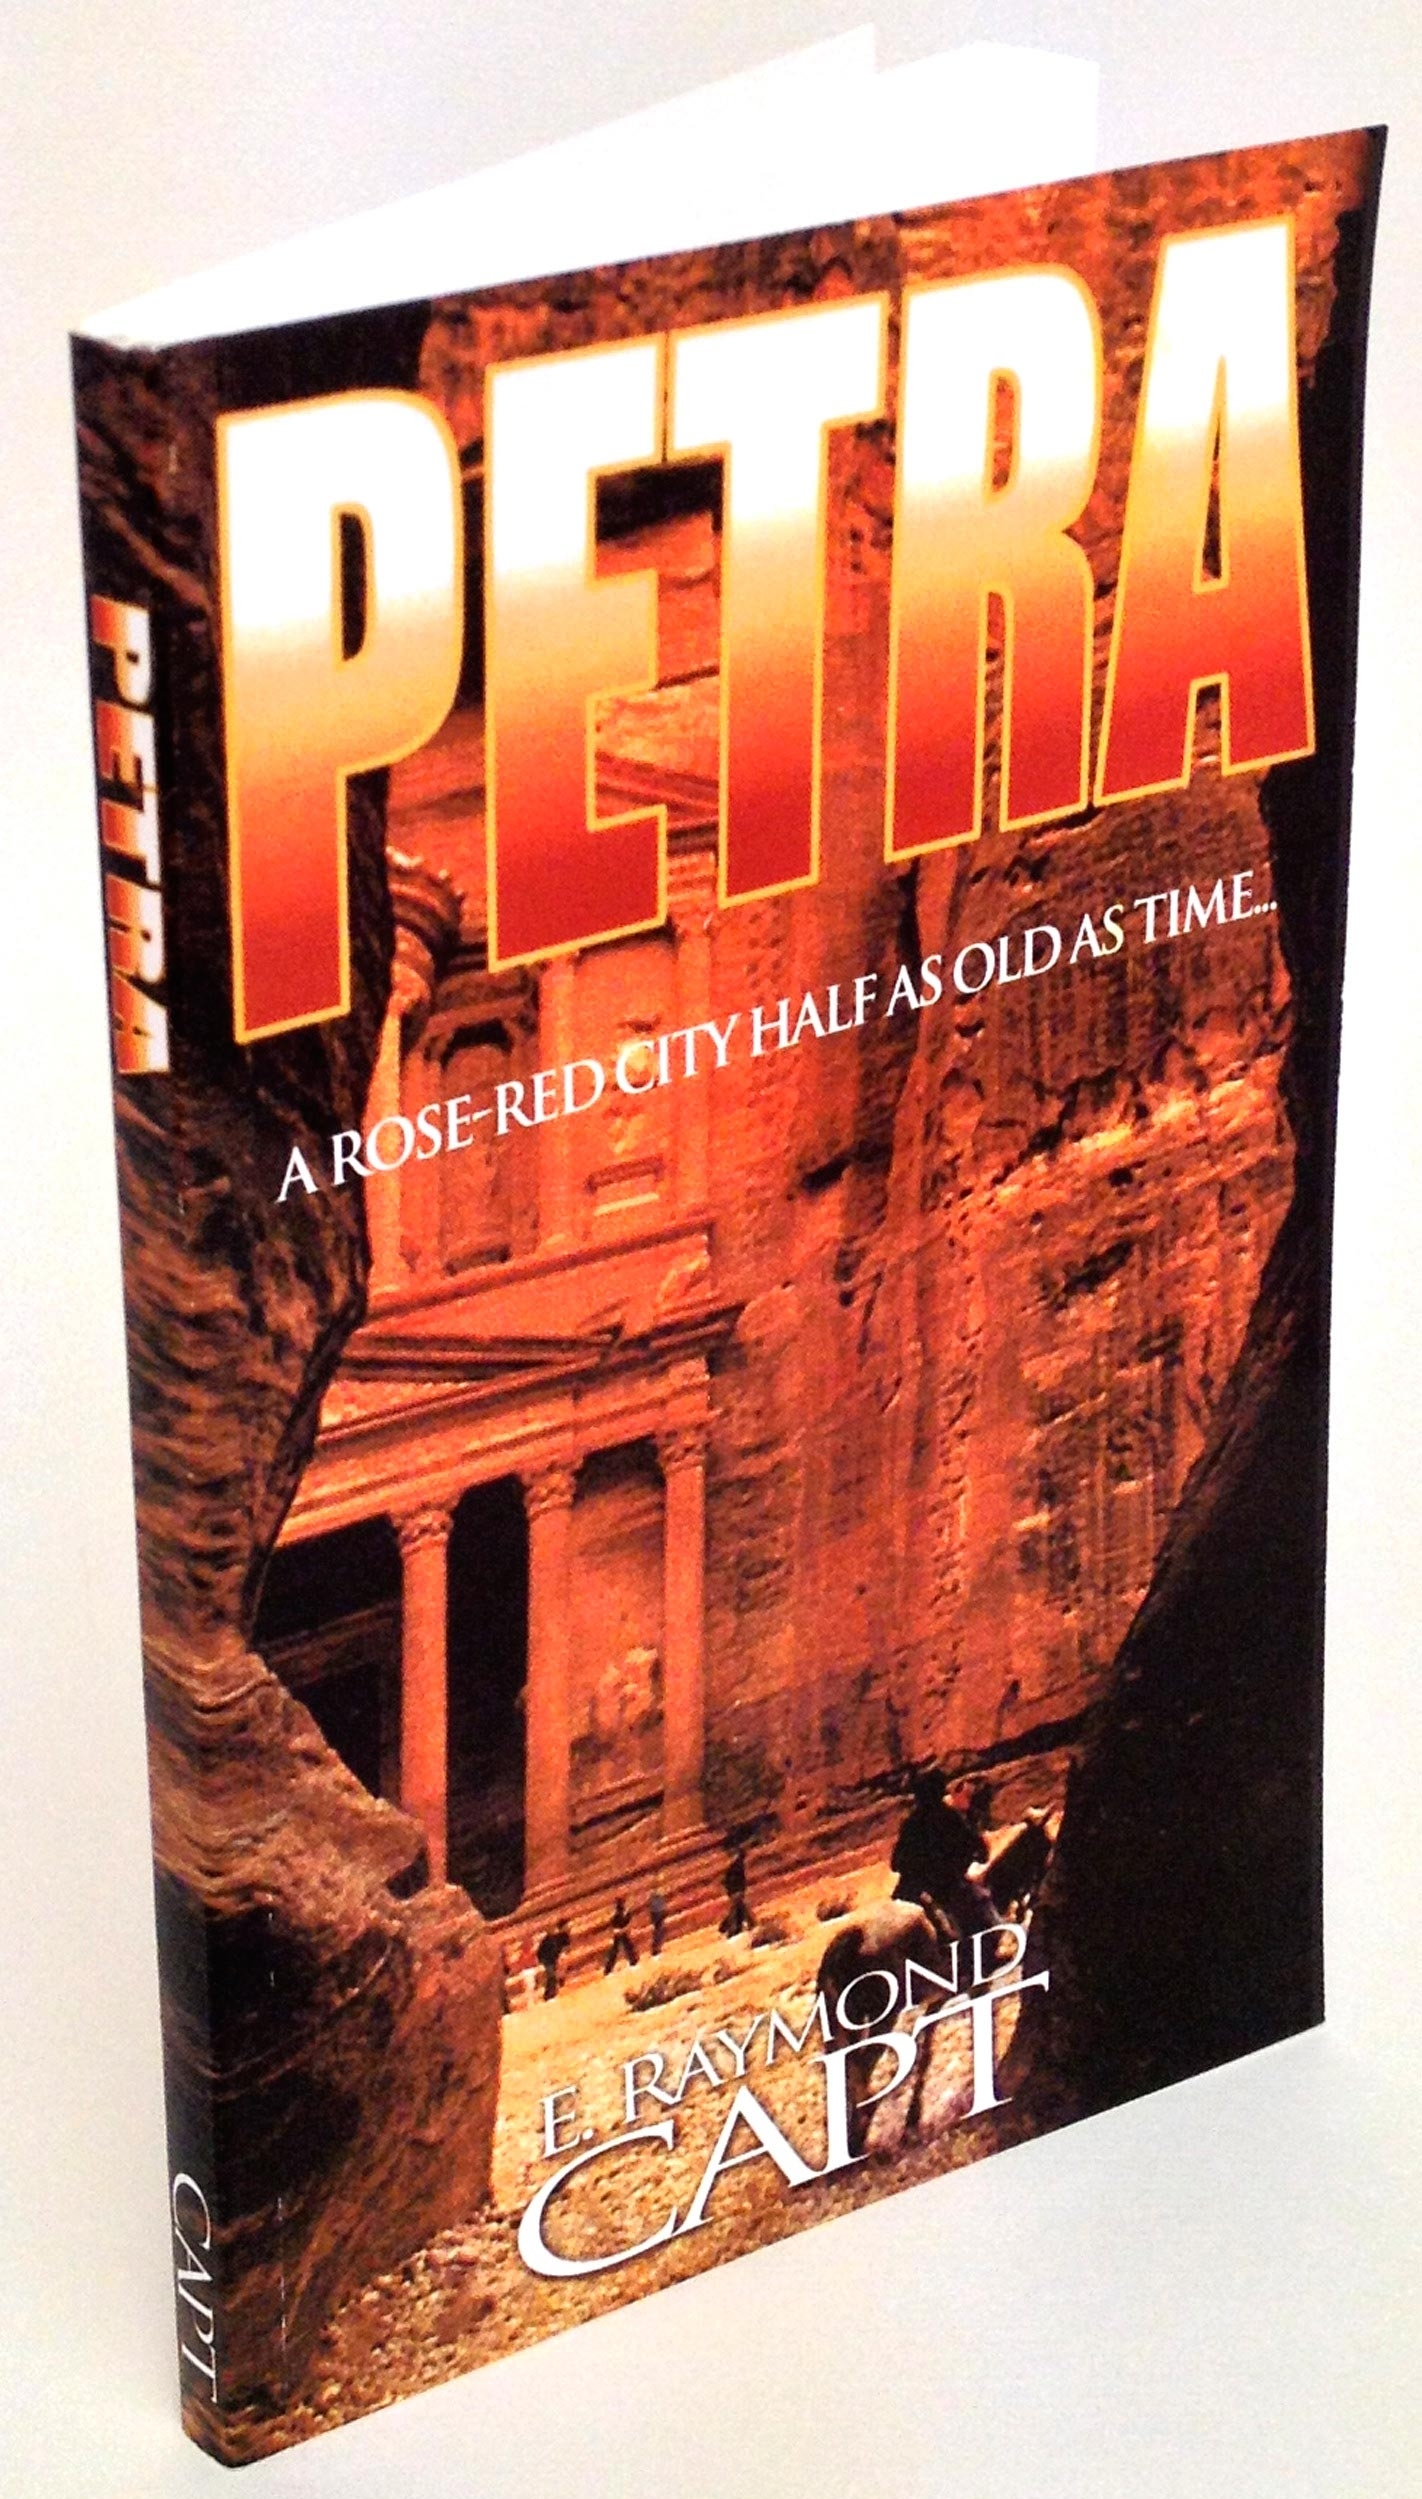 "PETRA... ""A rose-red city half as old as time"" - E. Raymond Capt"